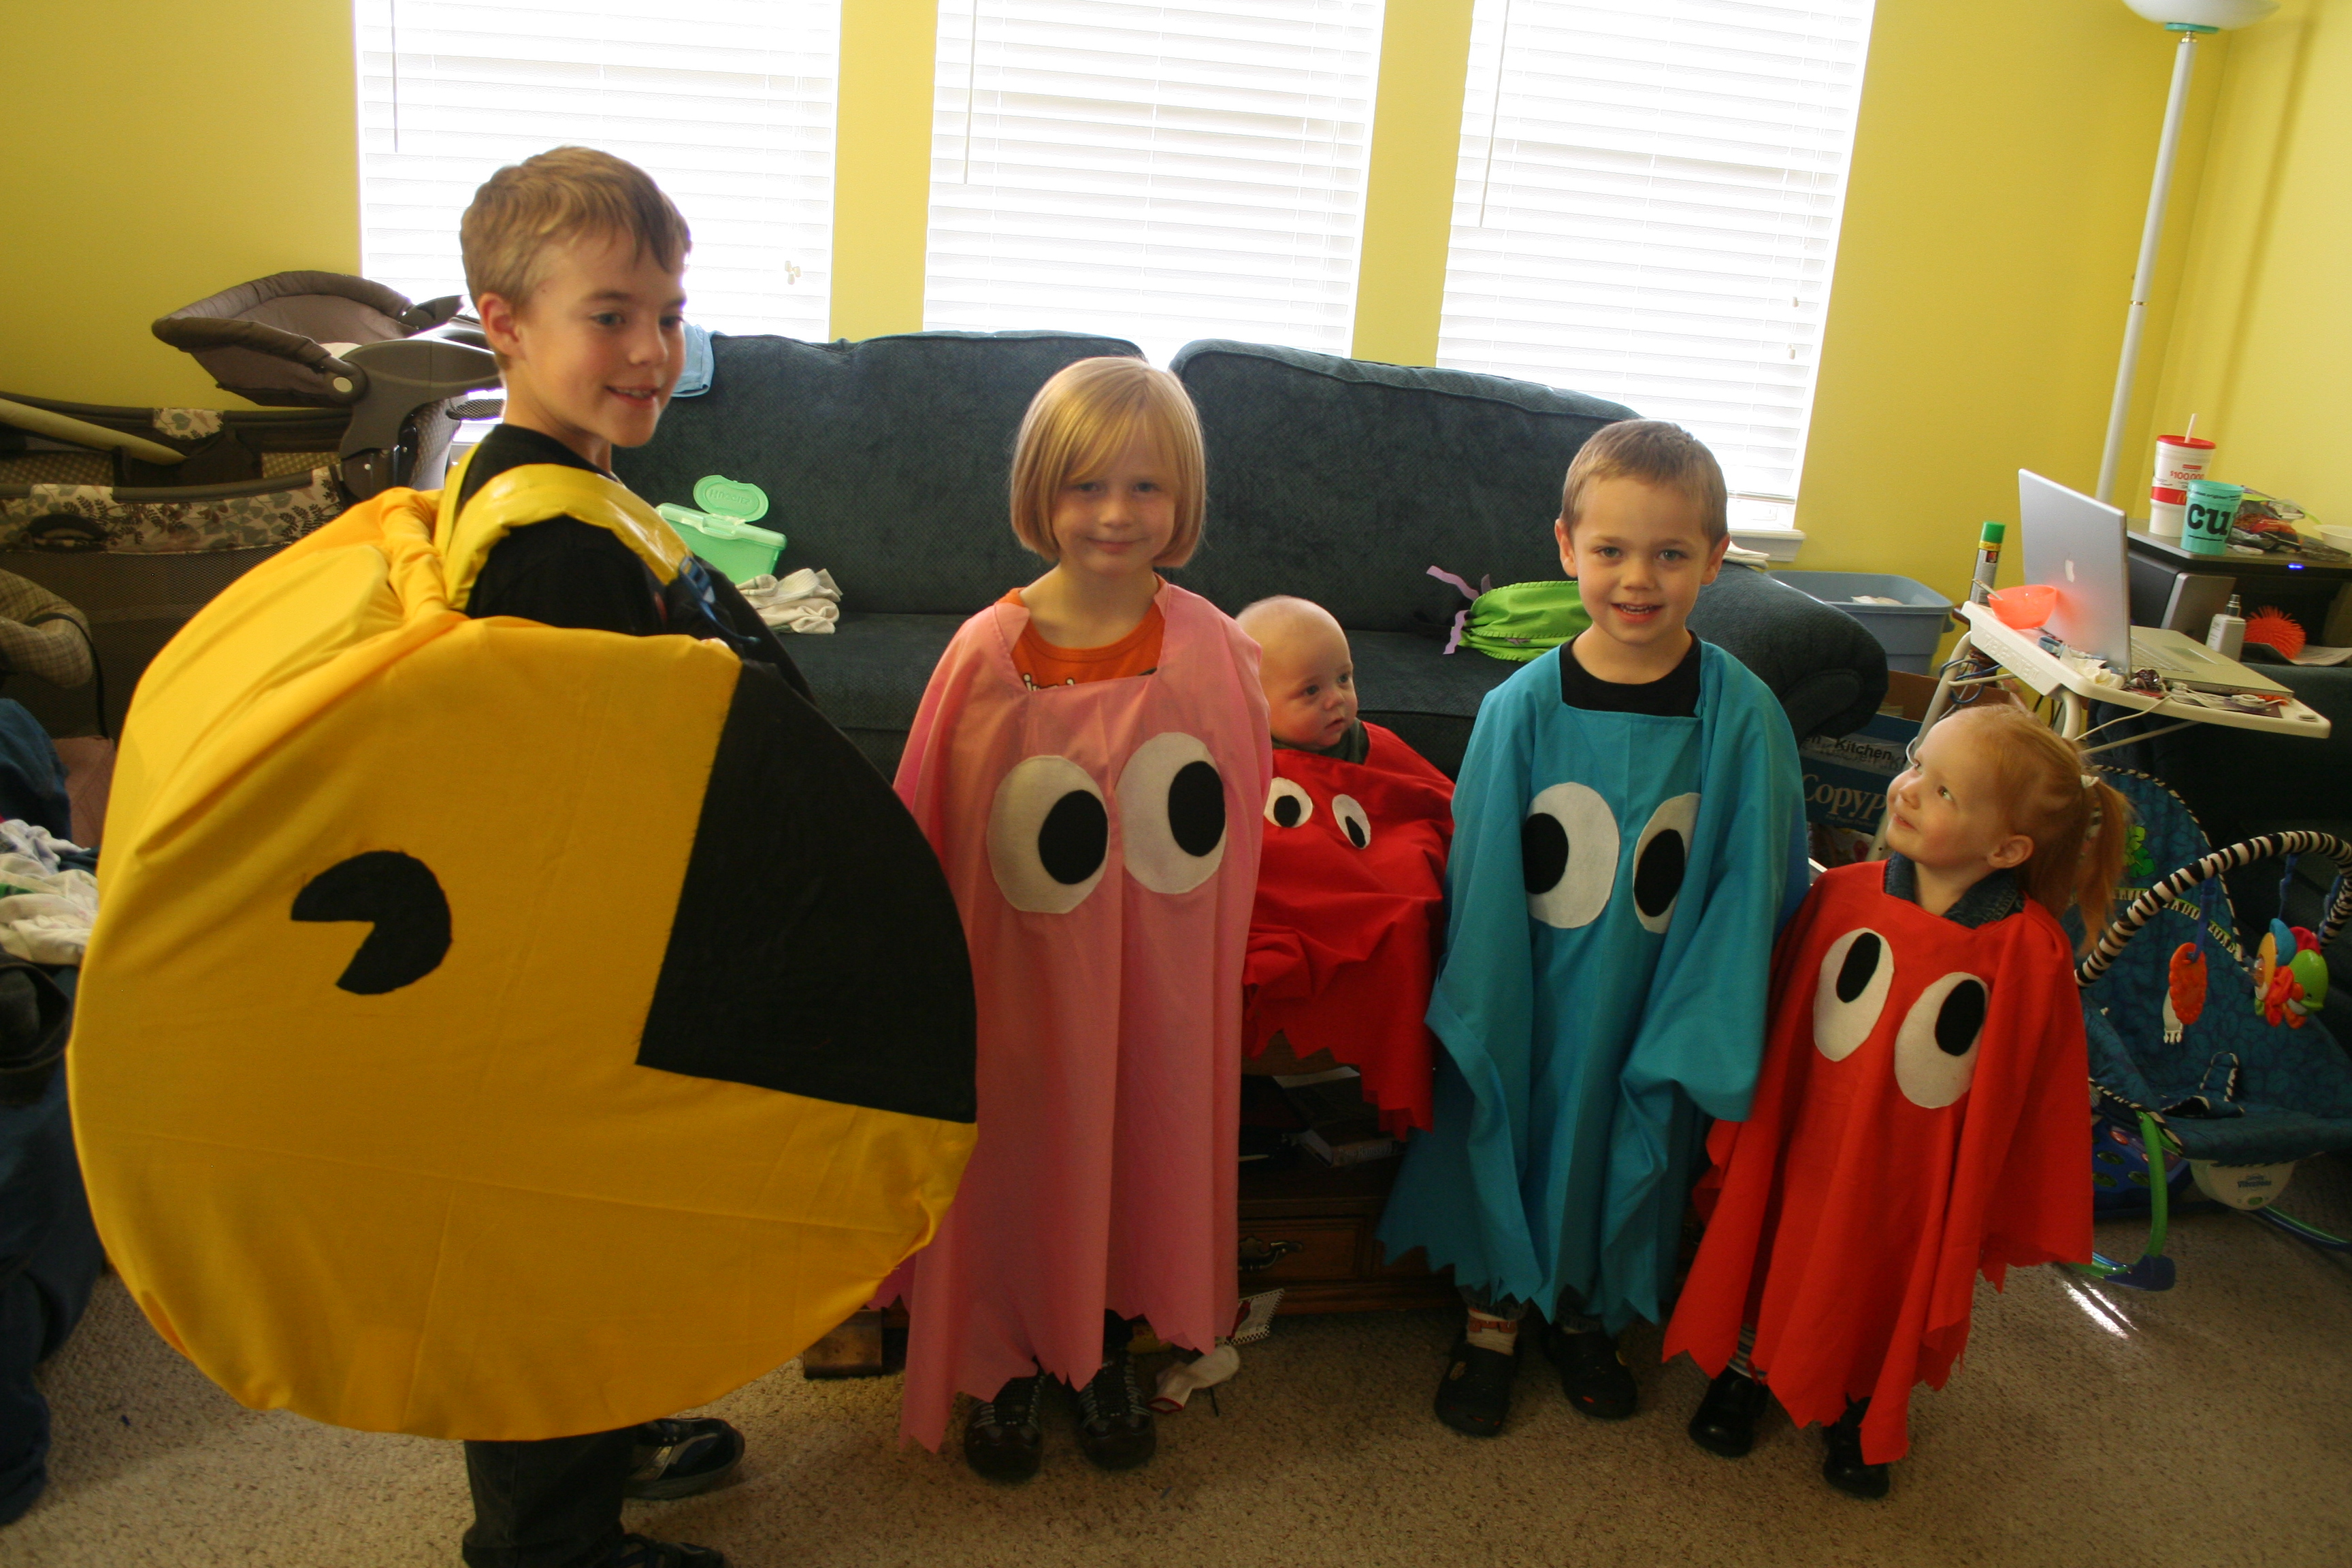 Pac Man and the ghosts costumes